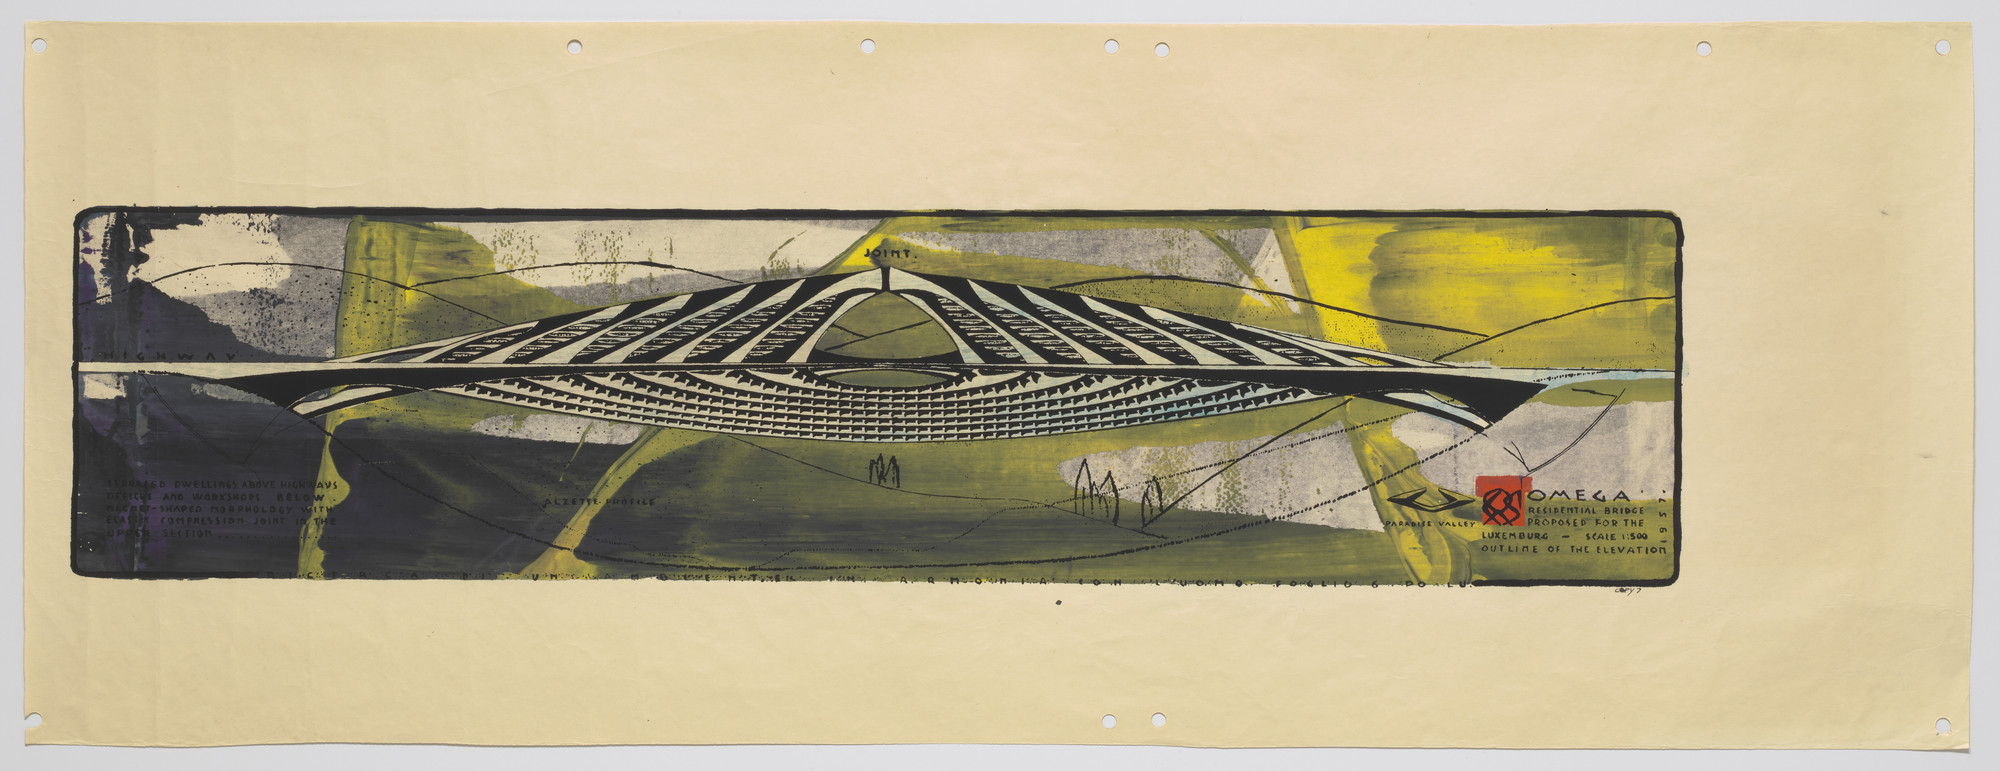 Paolo Soleri. Omega Residential Bridge Project, Luxembourg, Elevation. 1957